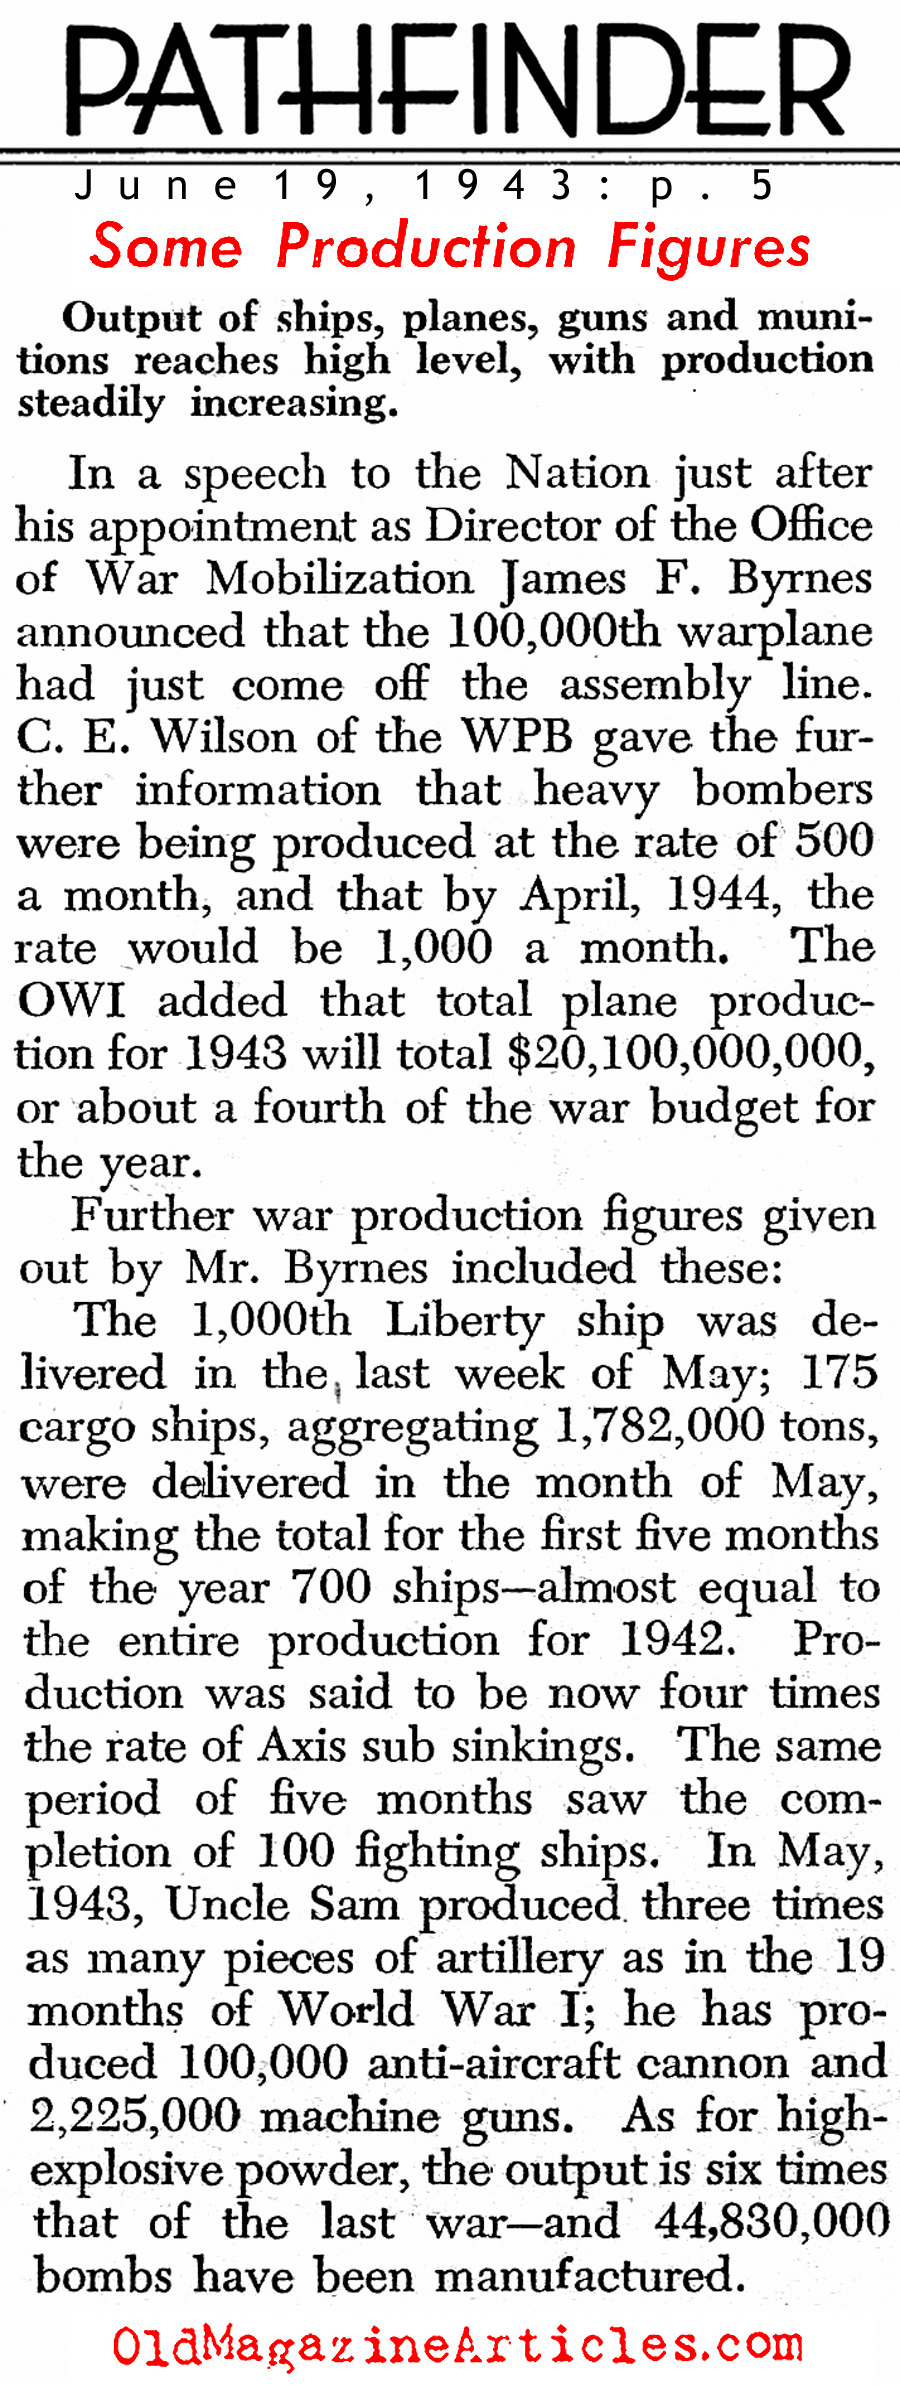 Mid-War Production Figures (Pathfinder Magazine, 1943)